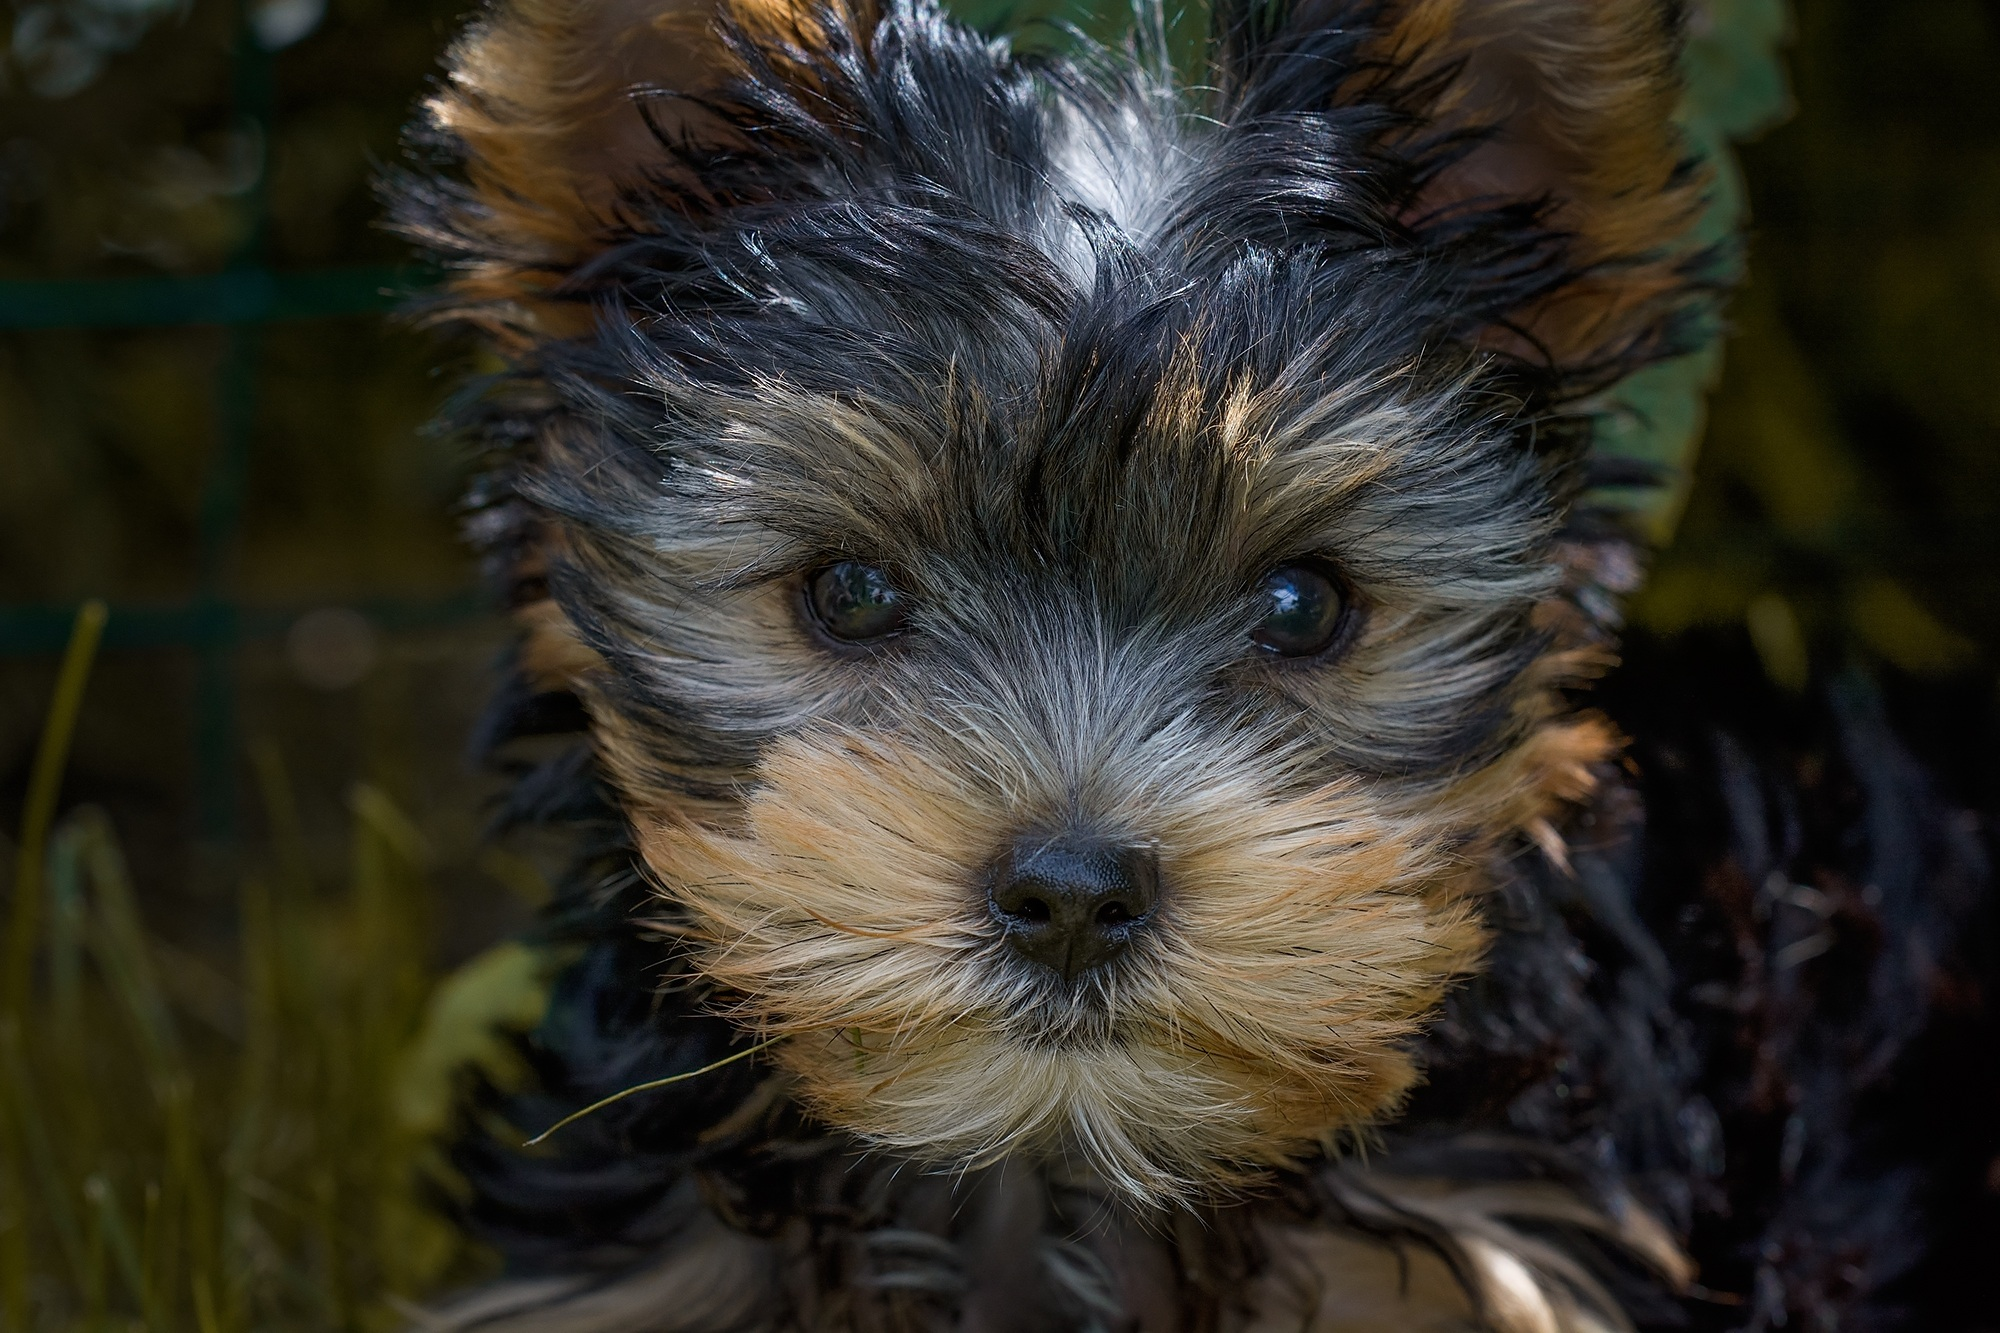 Cute Yorkshire Terrier Puppies Wallpaper Black And Tan Yorkshire Terrier Puppy Closeup Photography